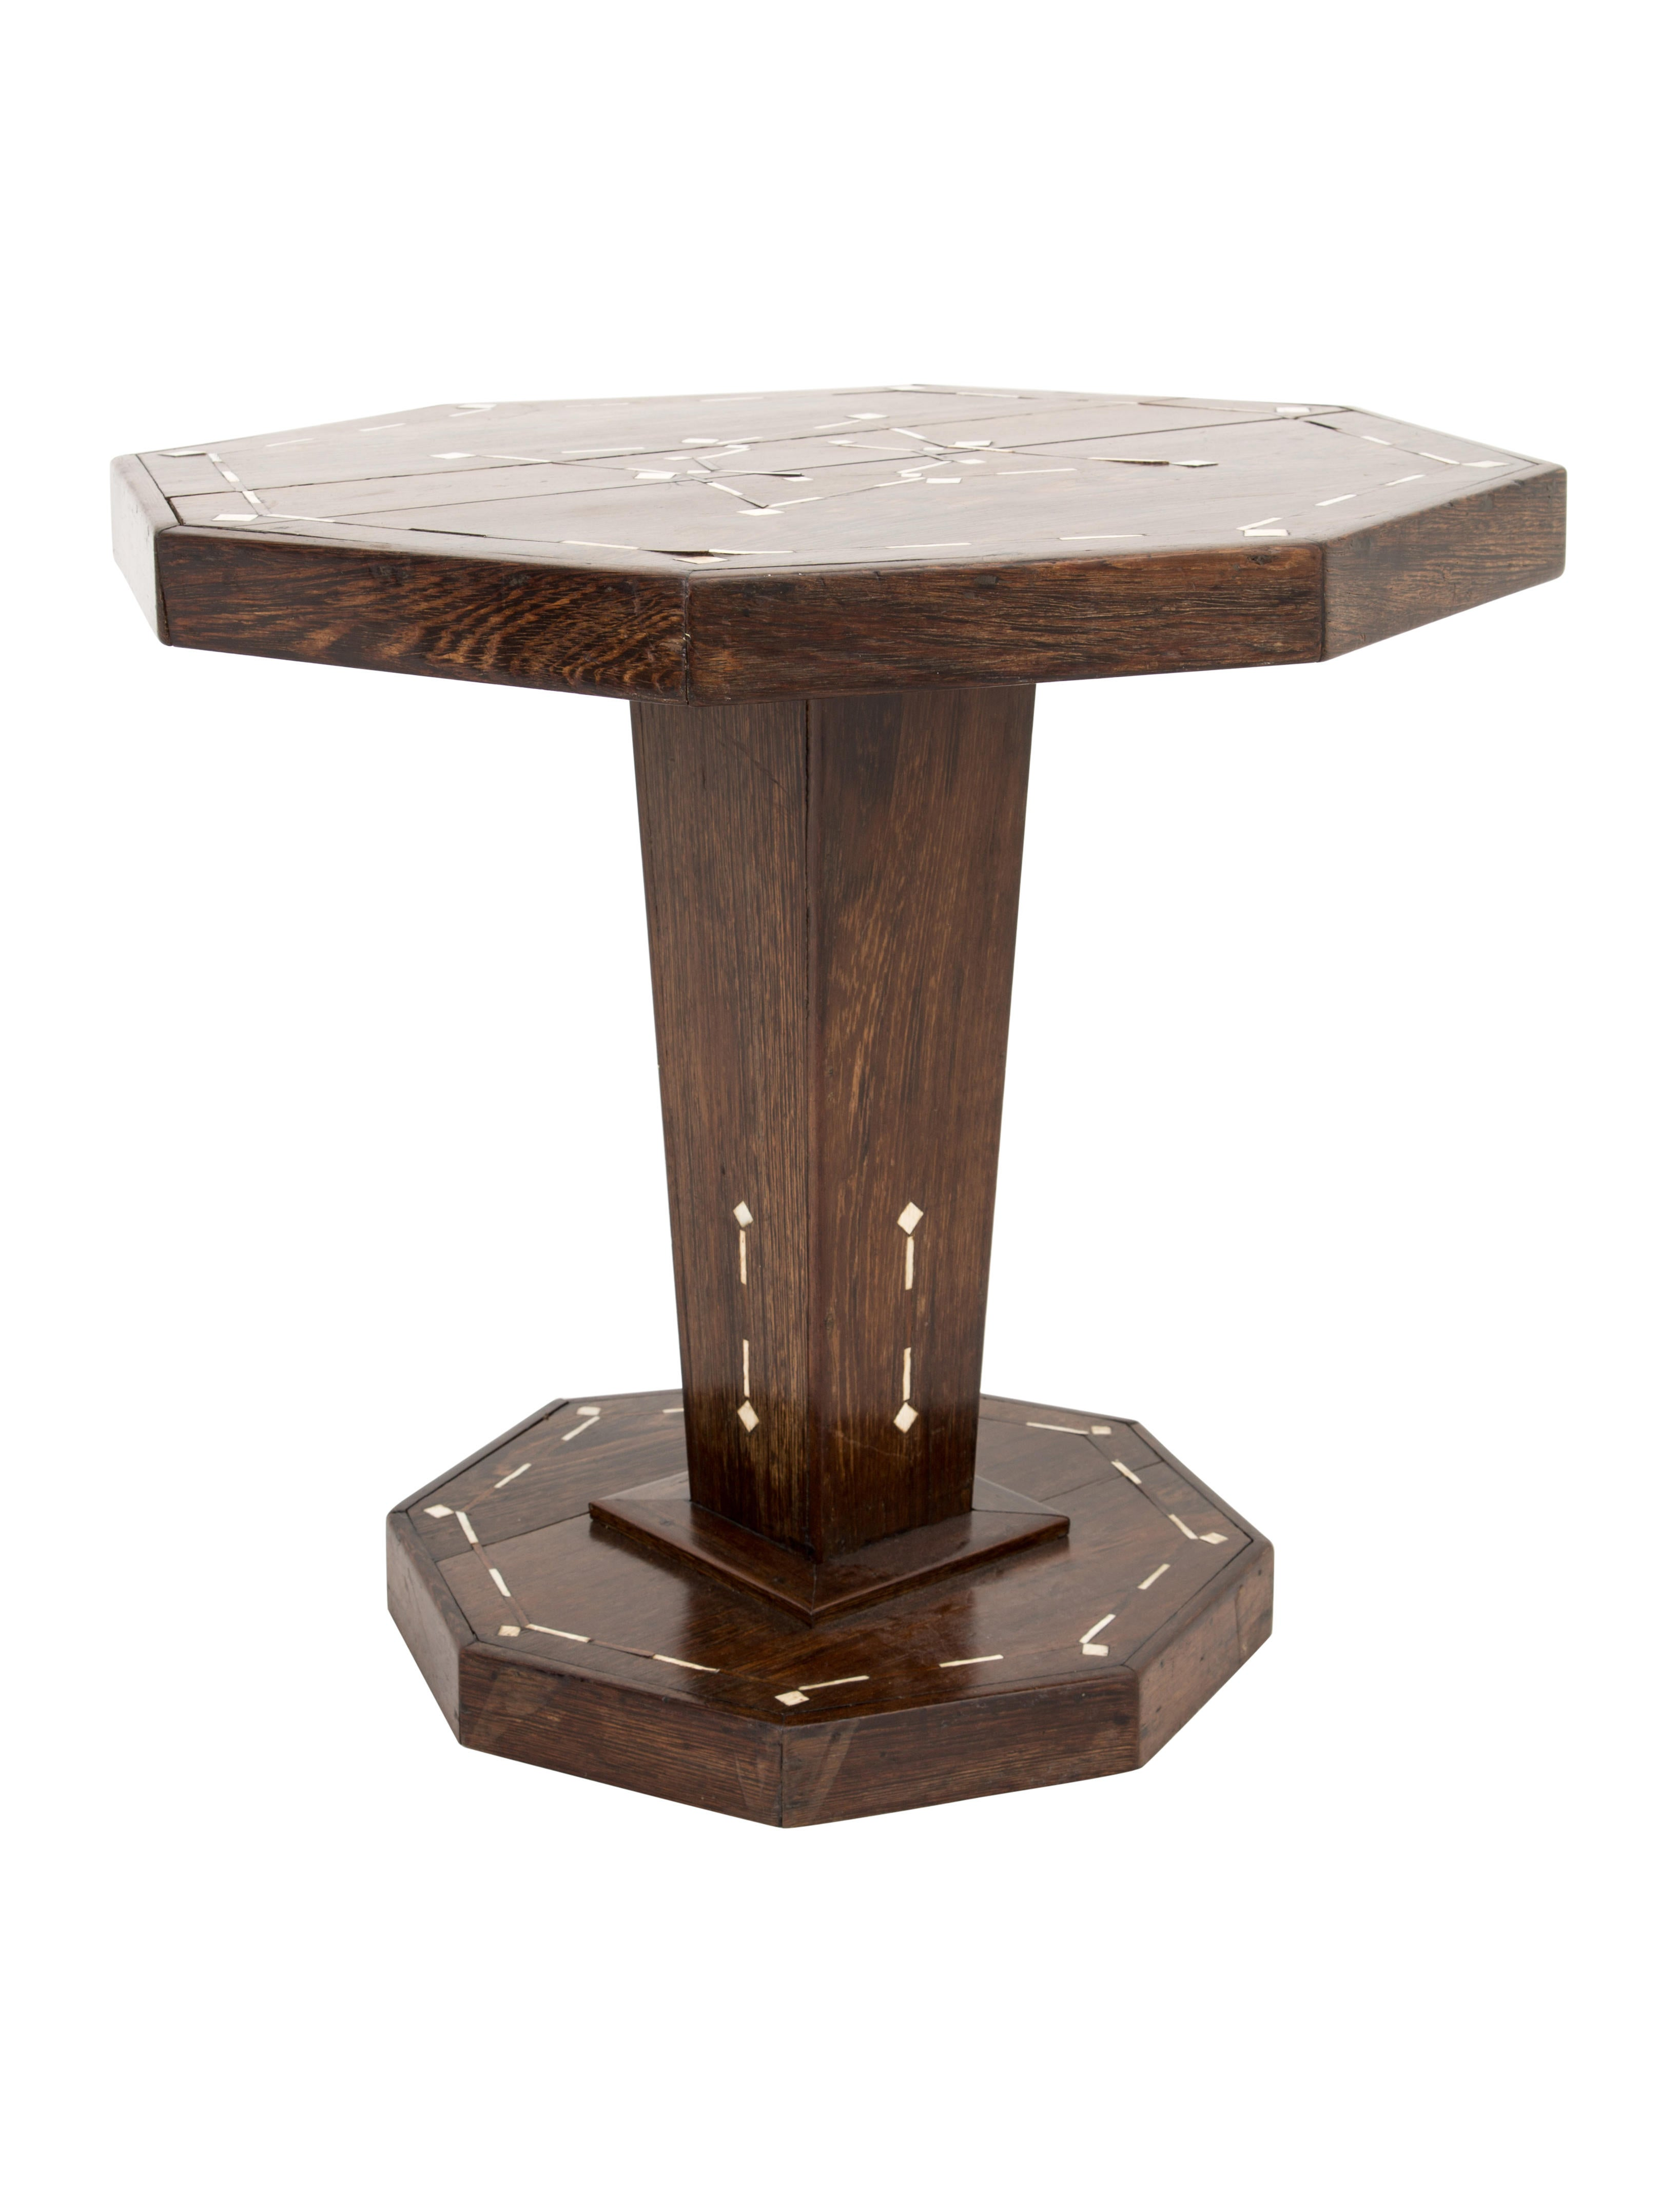 Inlaid Pedestal Table Furniture Table20067 The Realreal